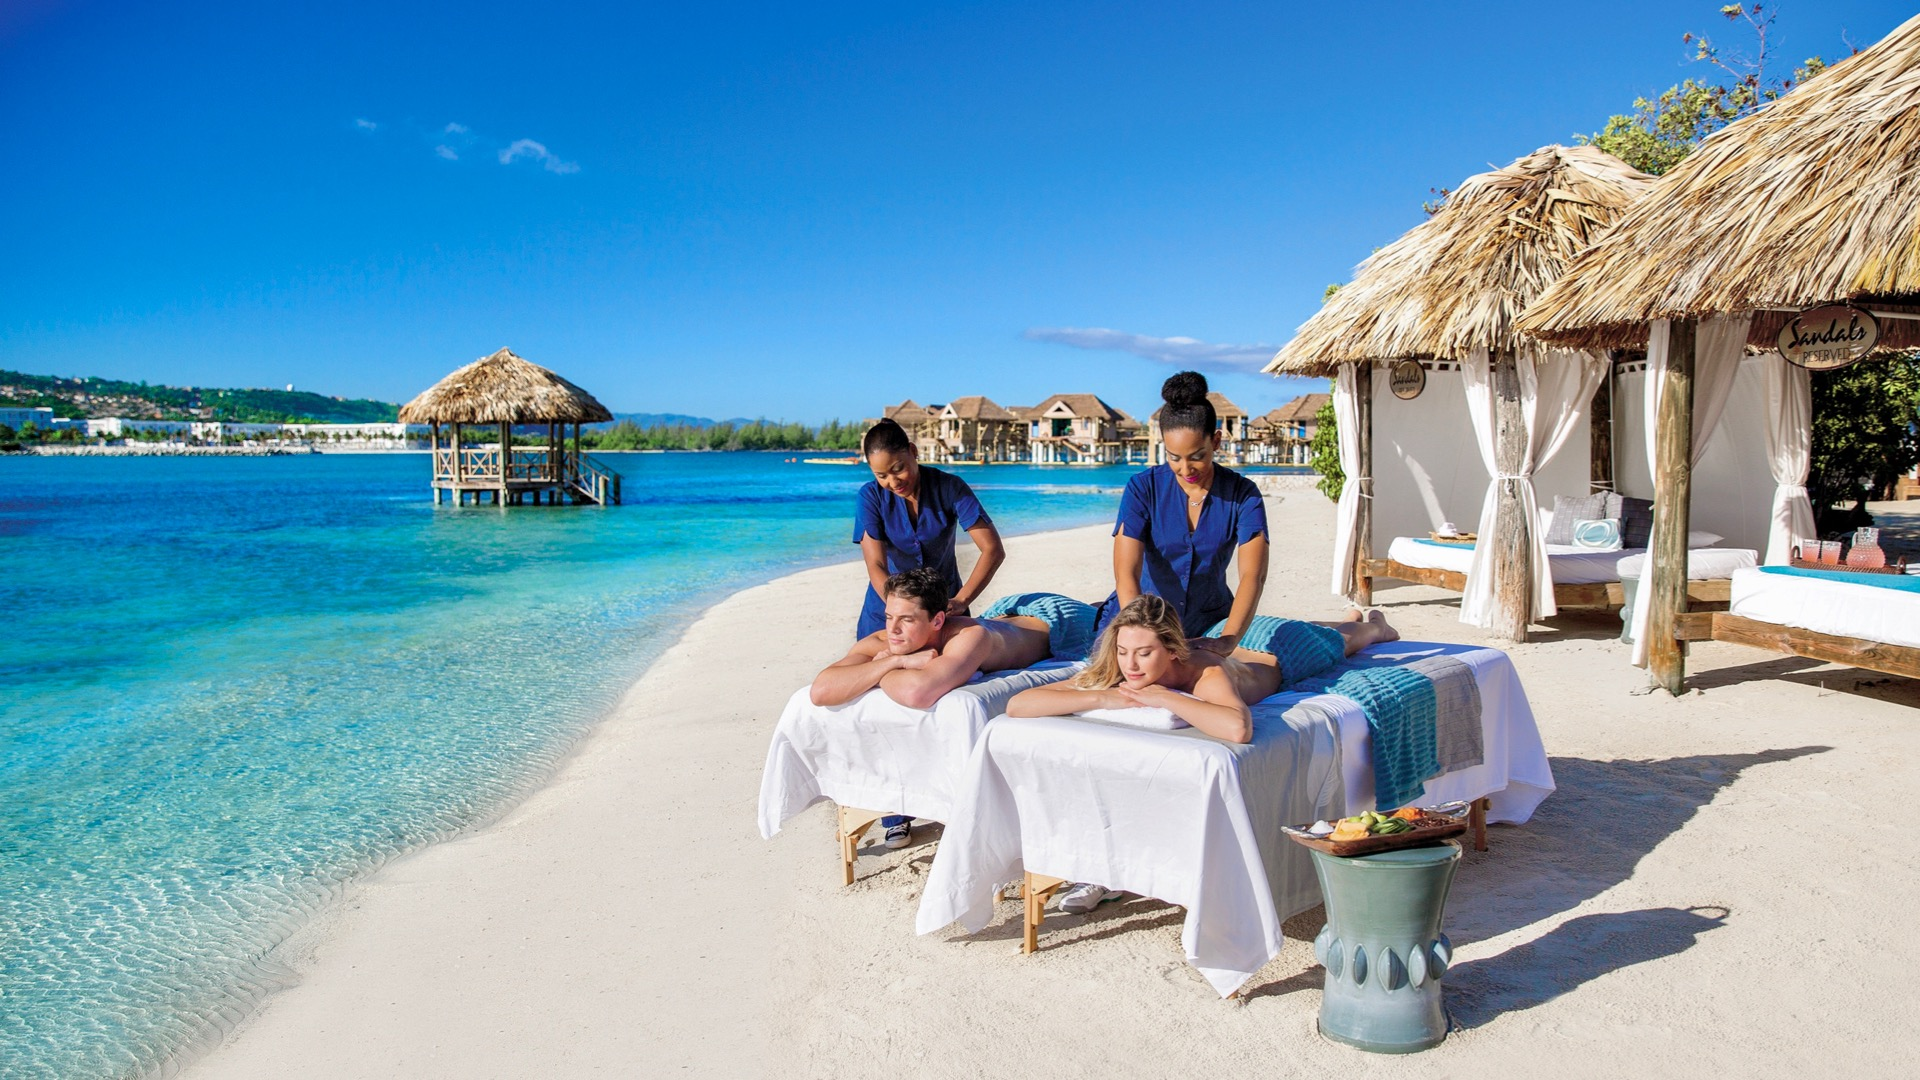 6c9ce4d173b1e Saltability partners with Sandals Resorts  Red Lane Spas